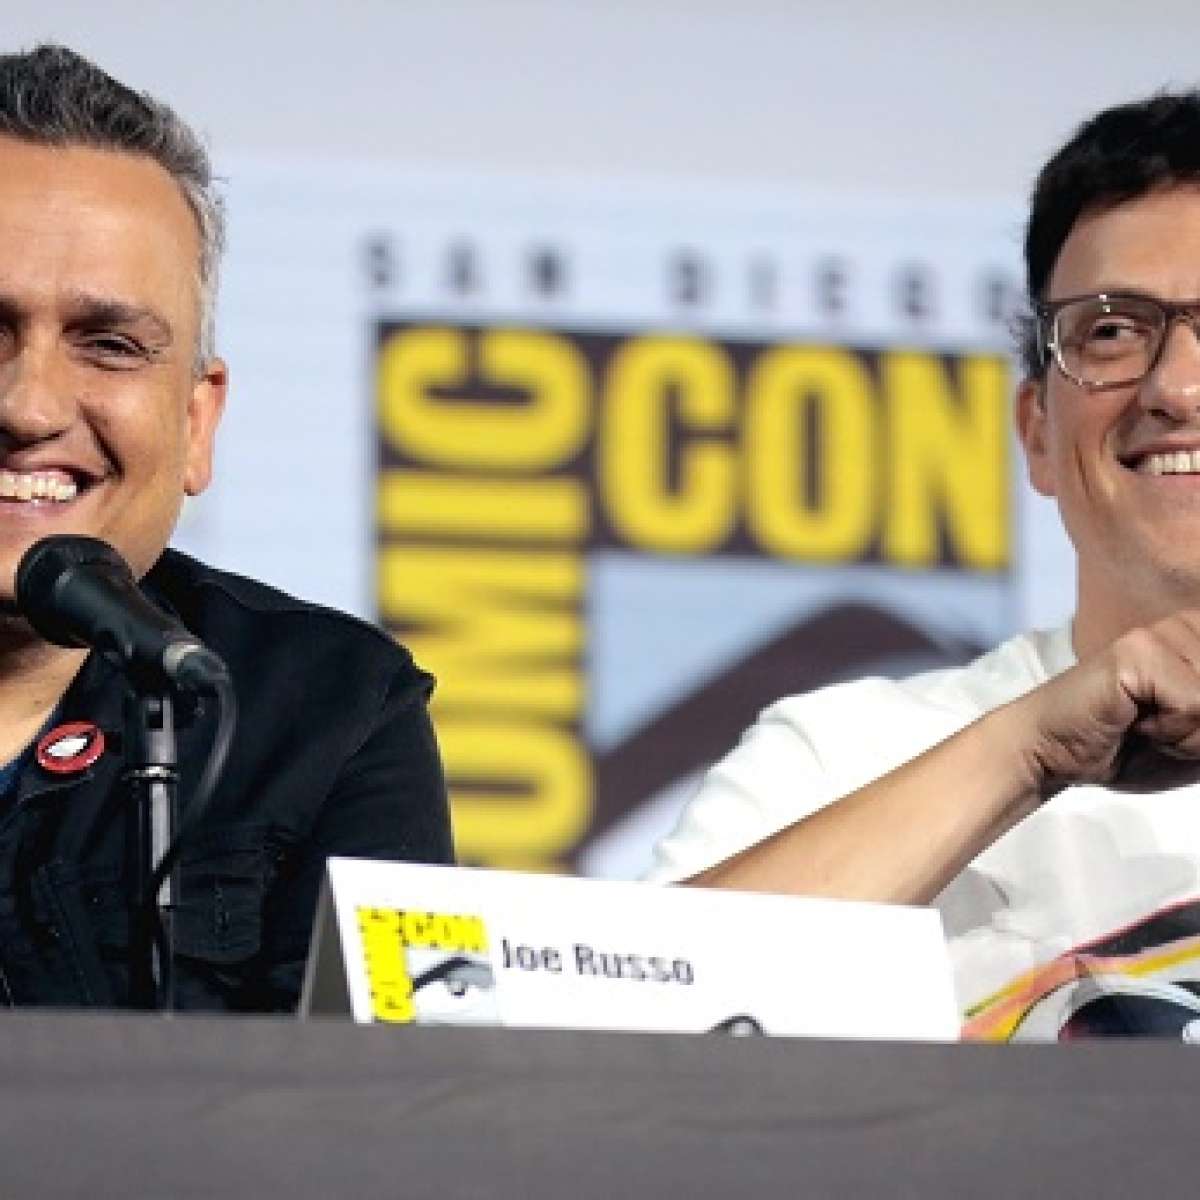 'Avengers: Endgame' directors Anthony and Joe Russo wary of returning to theatres amid COVID-19 crisis